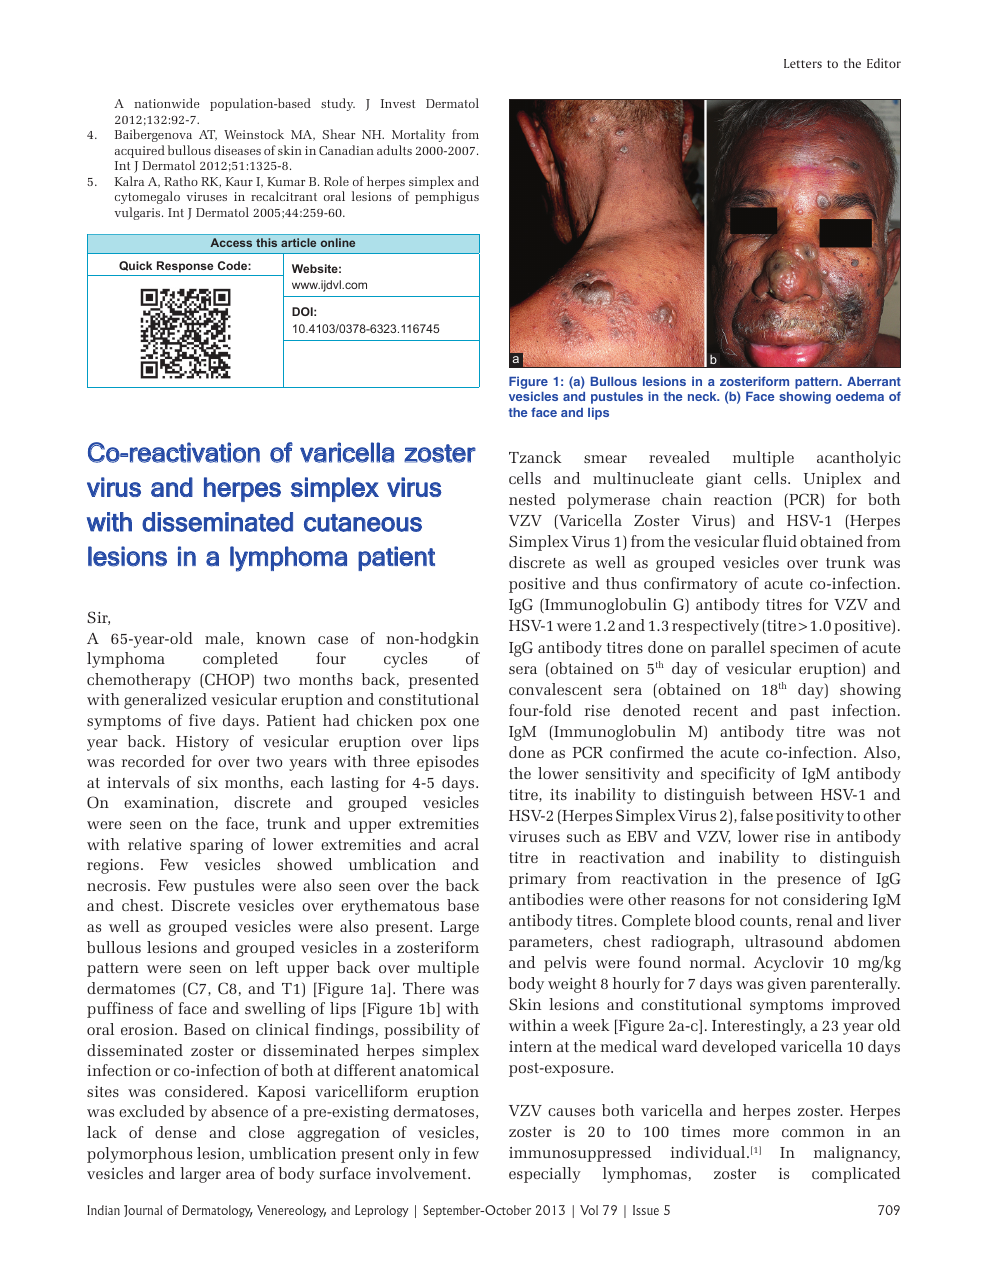 Co-reactivation of varicella zoster virus and herpes simplex virus